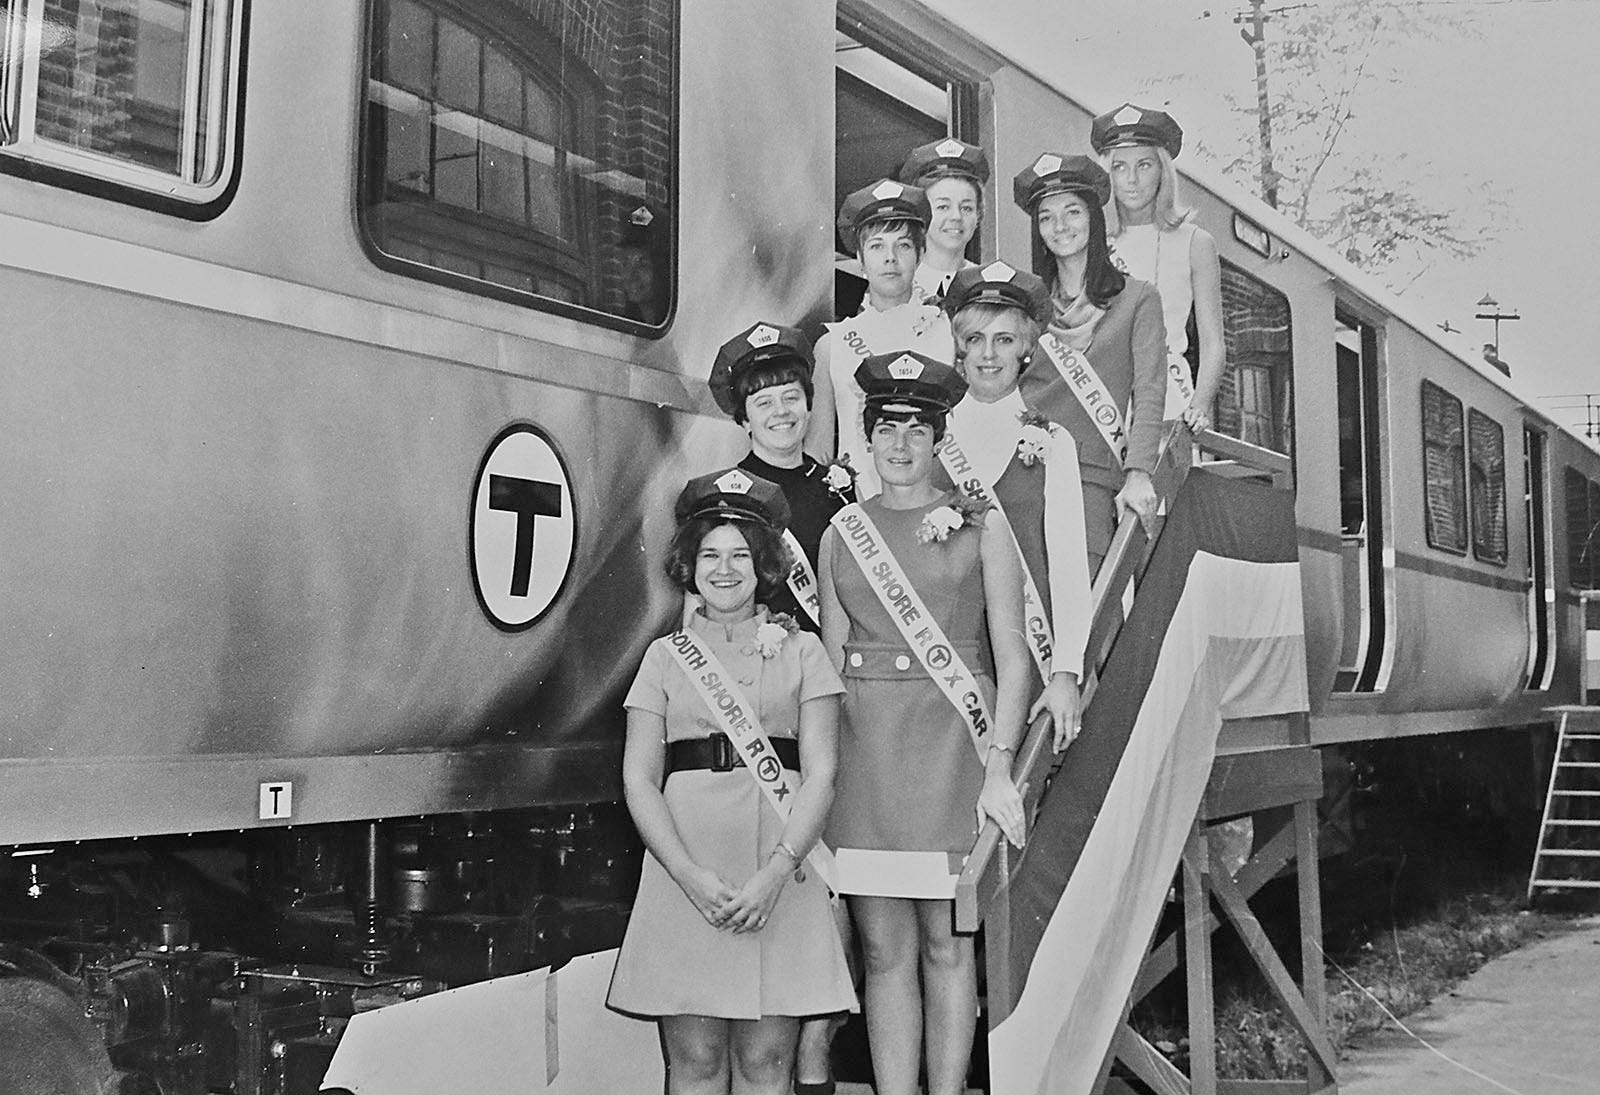 An image of new Red Line cars for the South Shore extension from the collection of Bradley Clarke, of Boston, transit historian and president of The Boston Street Railway Association.